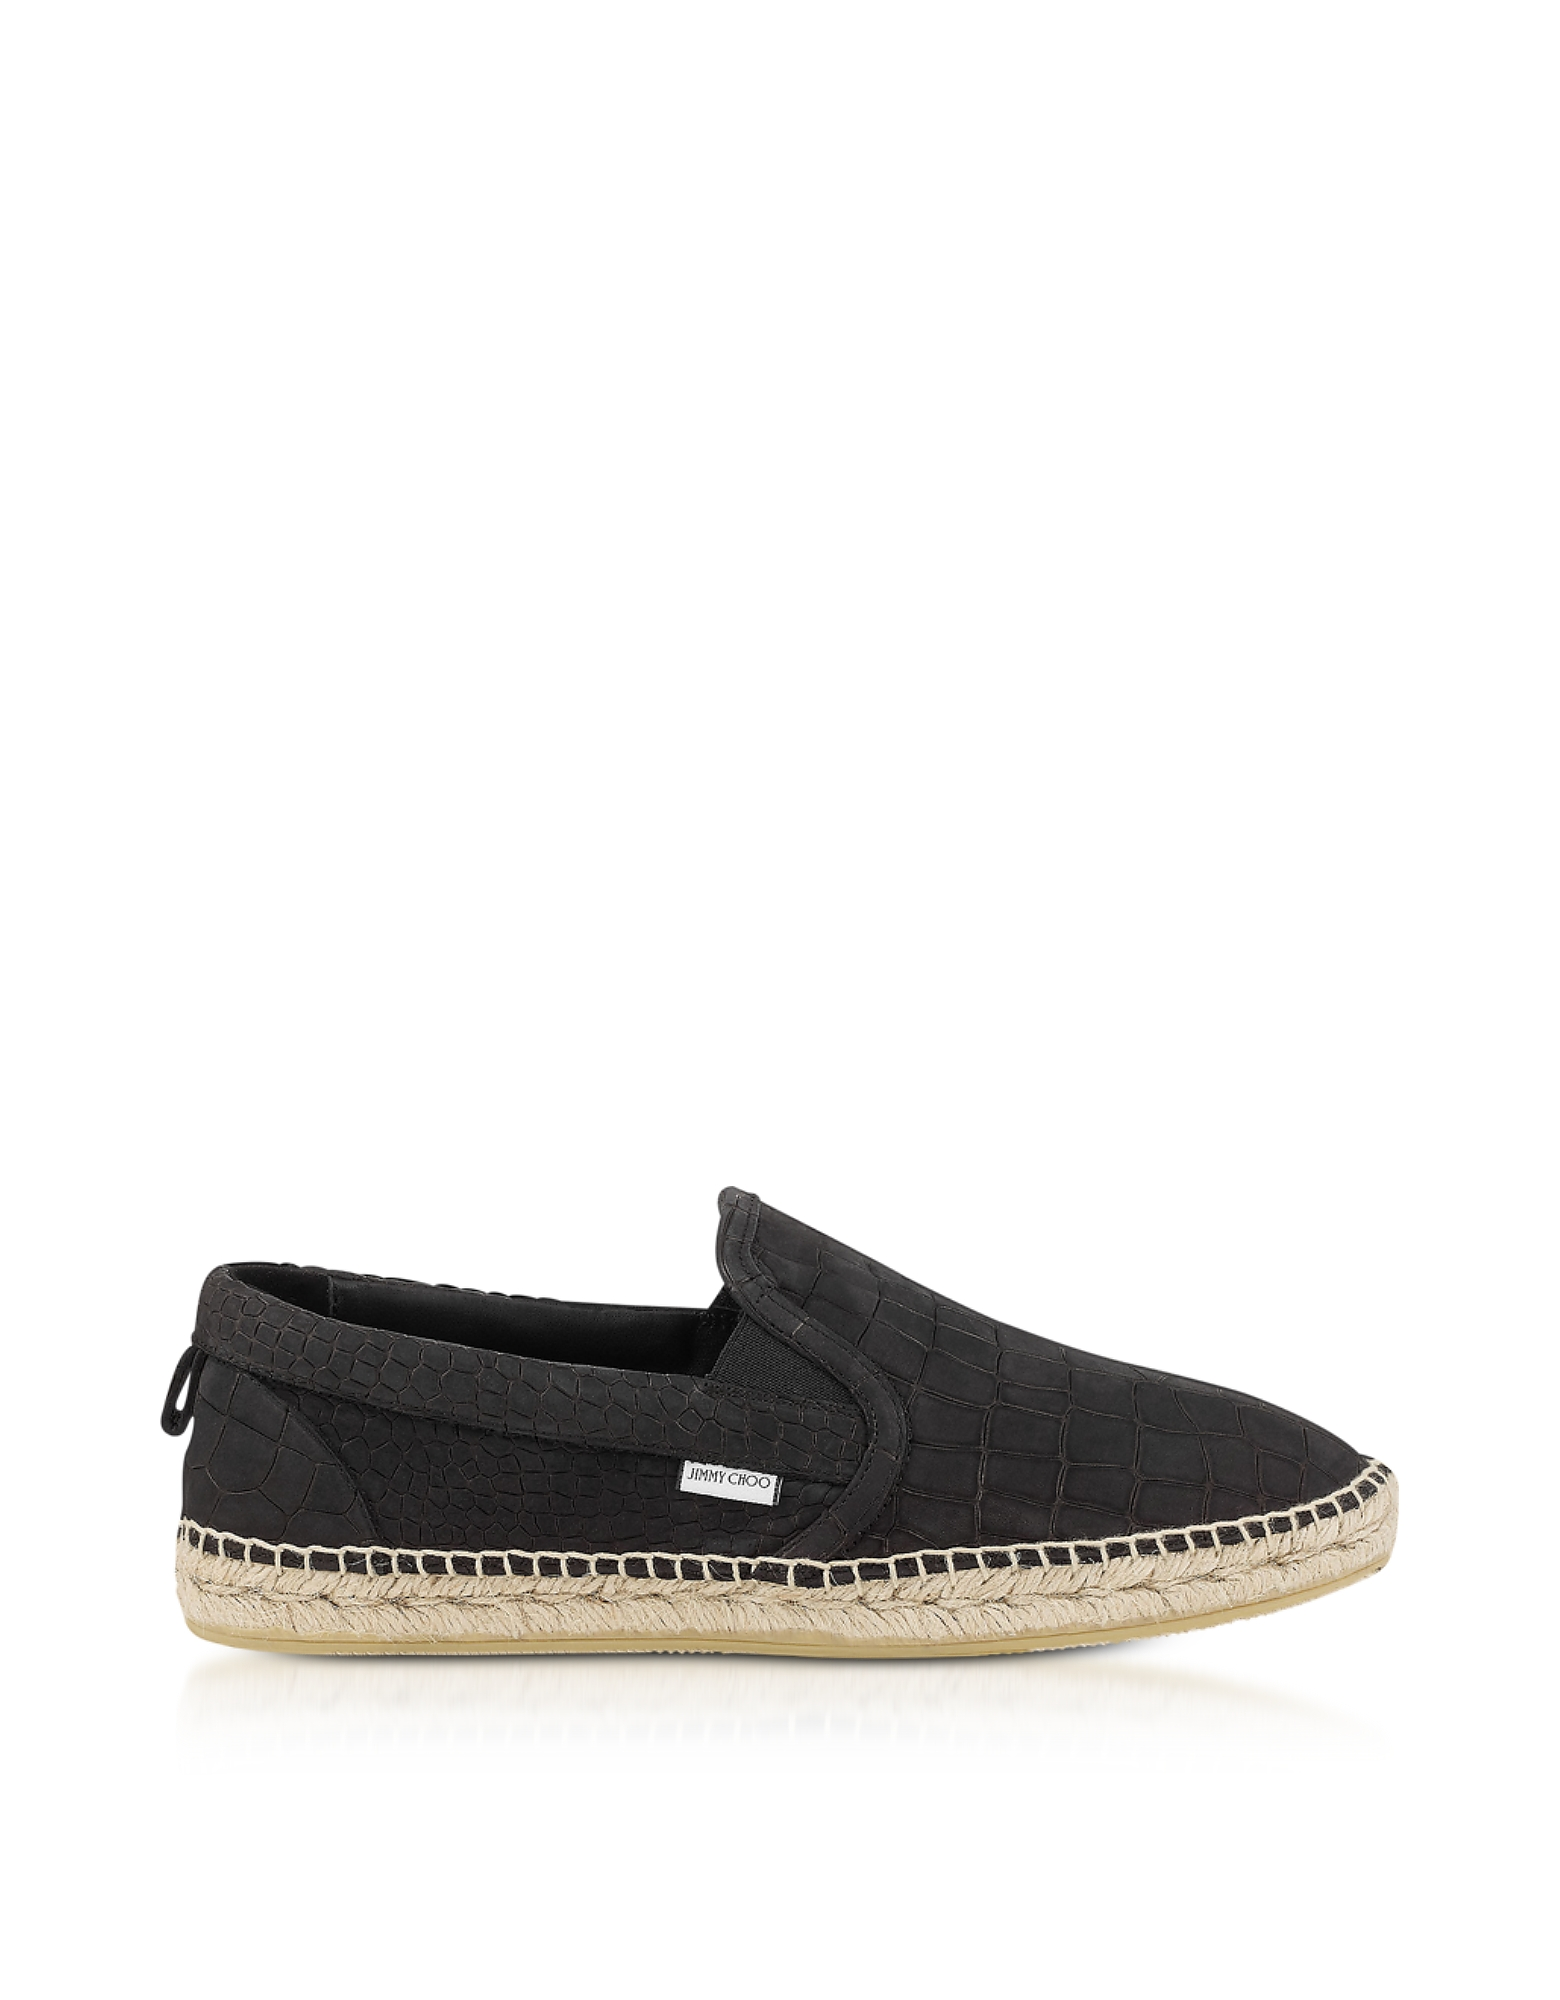 Jimmy Choo Shoes, Vlad Black Croco Printed Nubuck Espadrilles